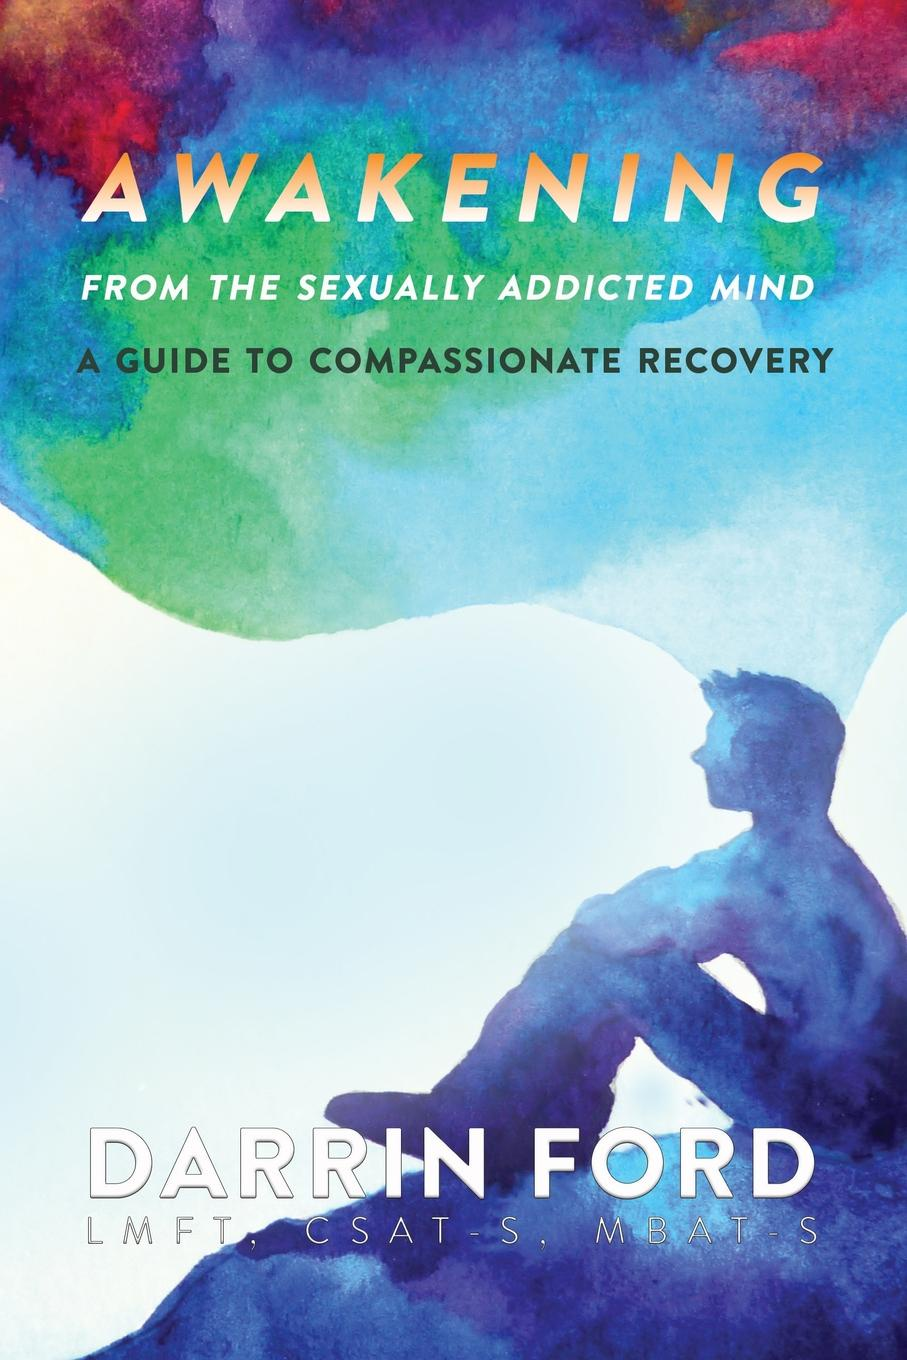 Darrin Ford Awakening from the Sexually Addictive Mind. A Guide to Compassionate Recovery alf h walle recovery the native way a therapist s manual pb